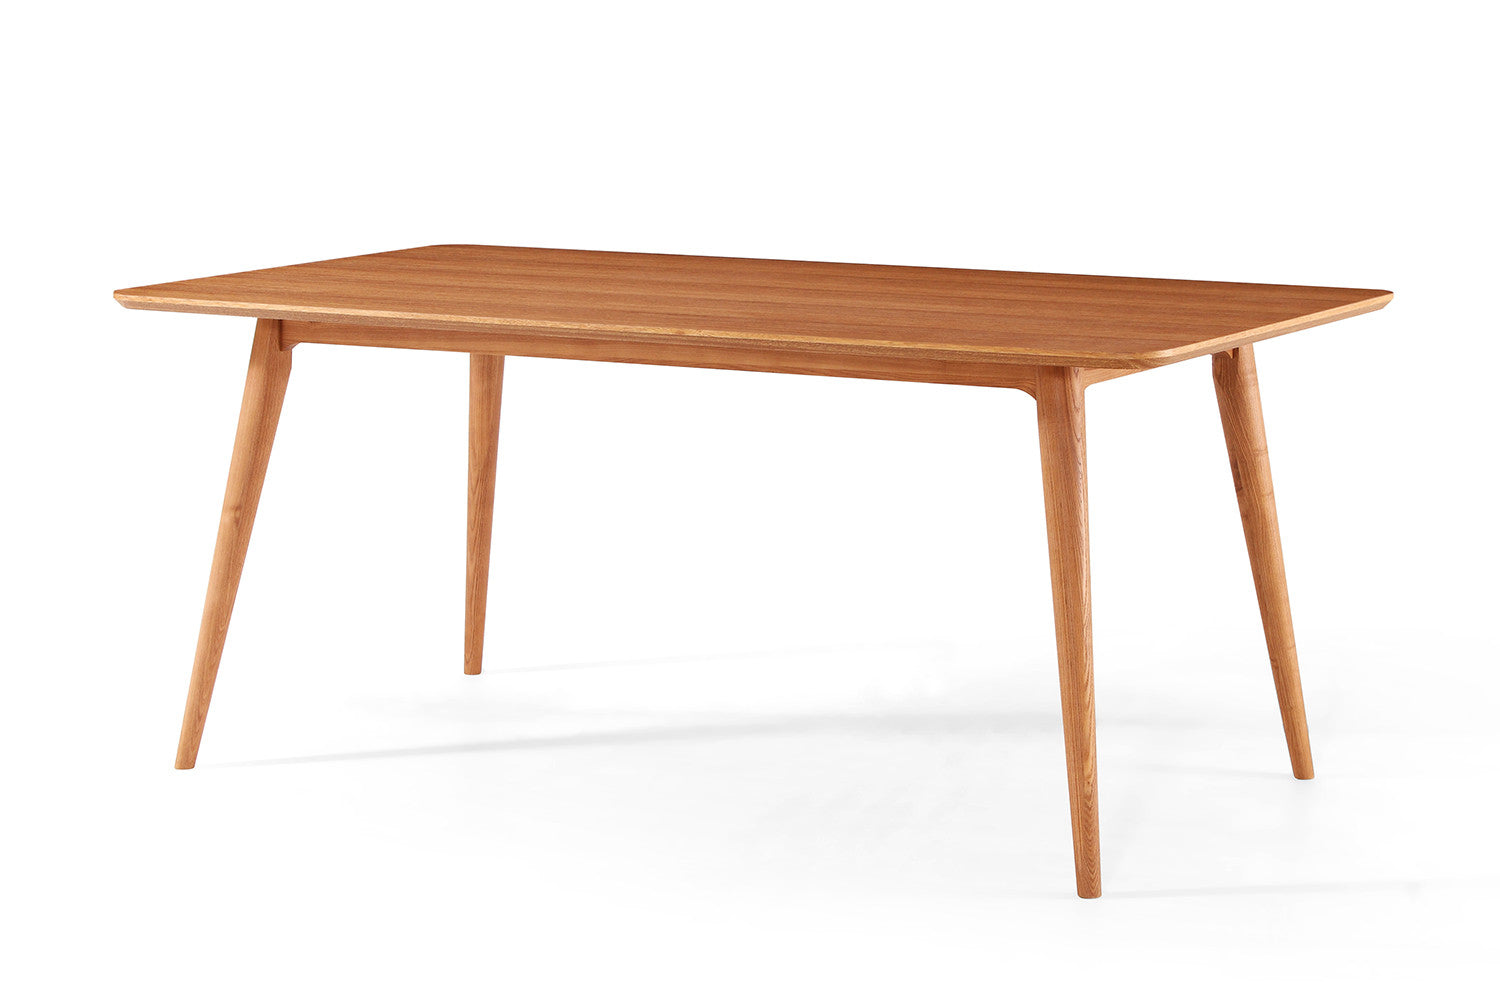 Table de salle manger design en bois julia dewarens for Table salle a manger loft